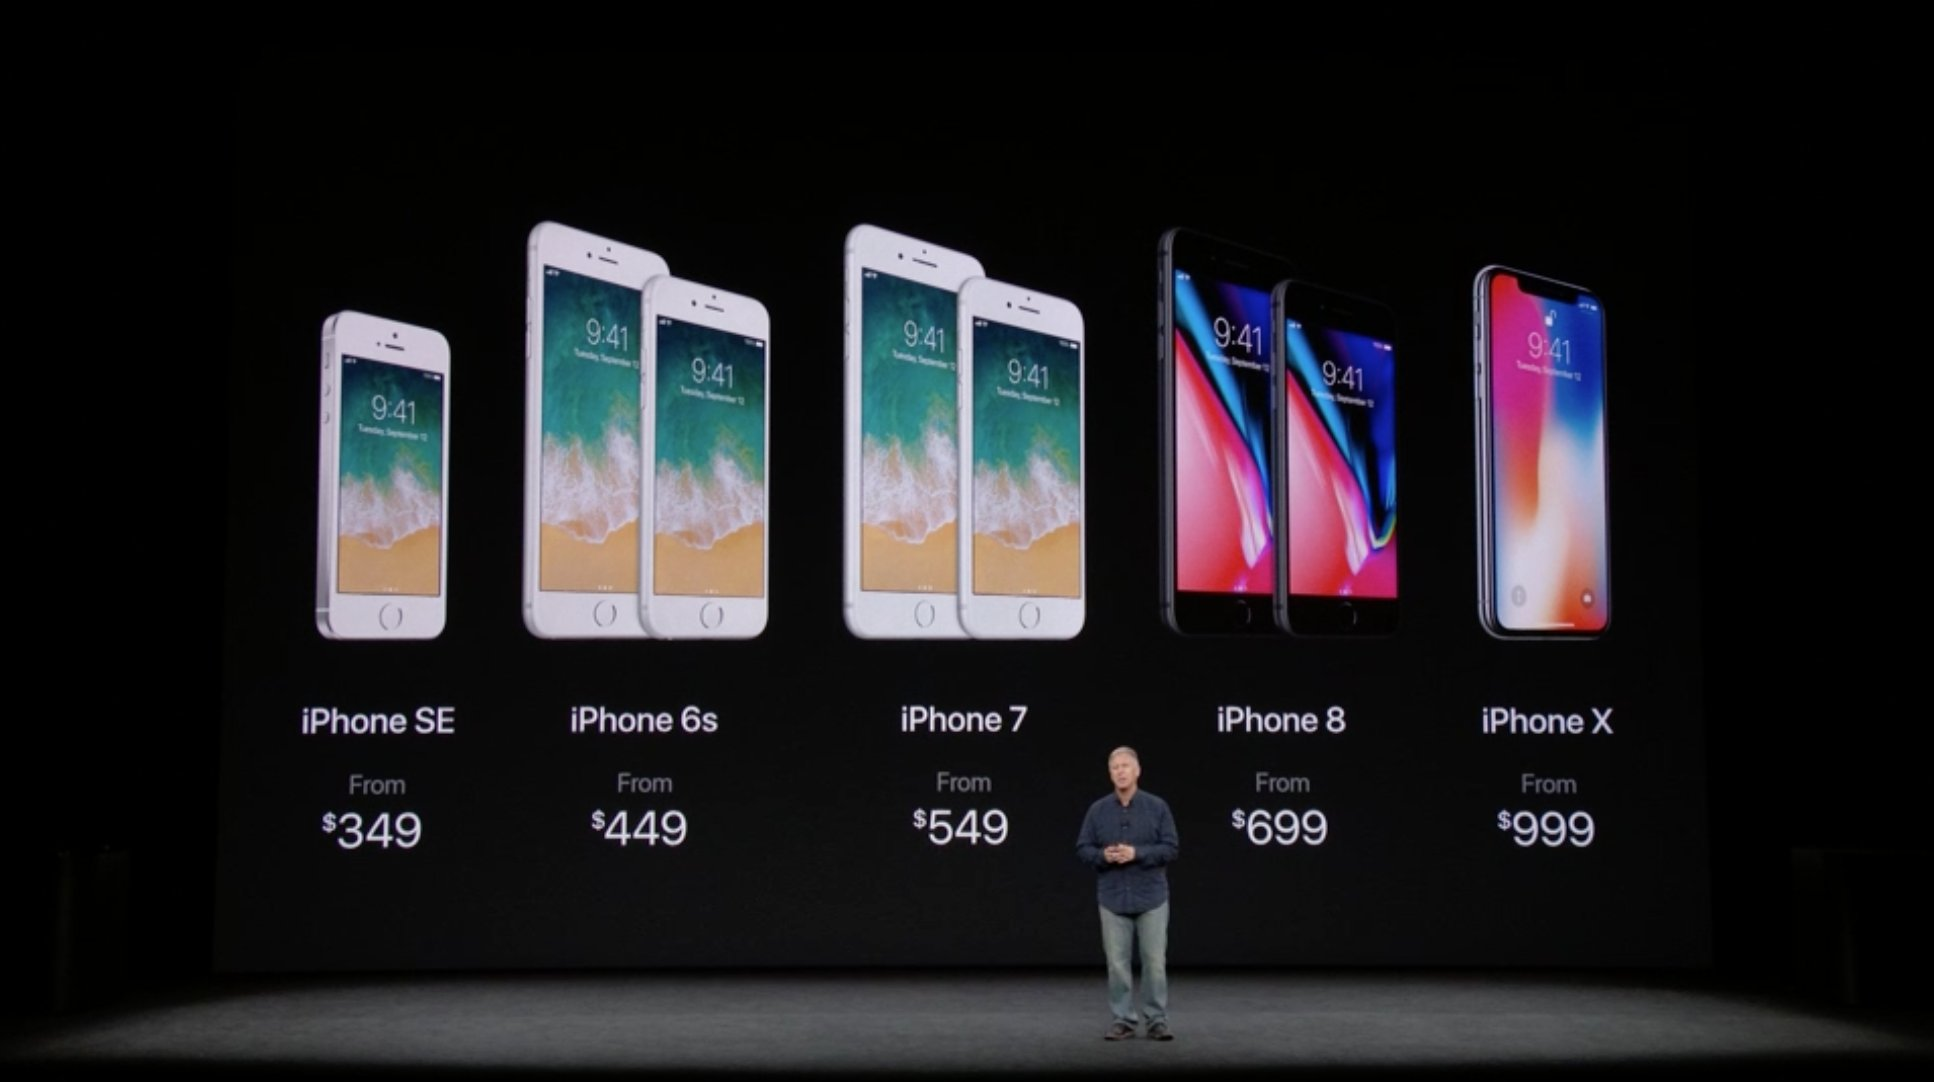 Here's how much the new iPhone 8 and iPhone X cost: https://t.co/vpJm79i84W #AppleEvent https://t.co/AhzeLFcUTm